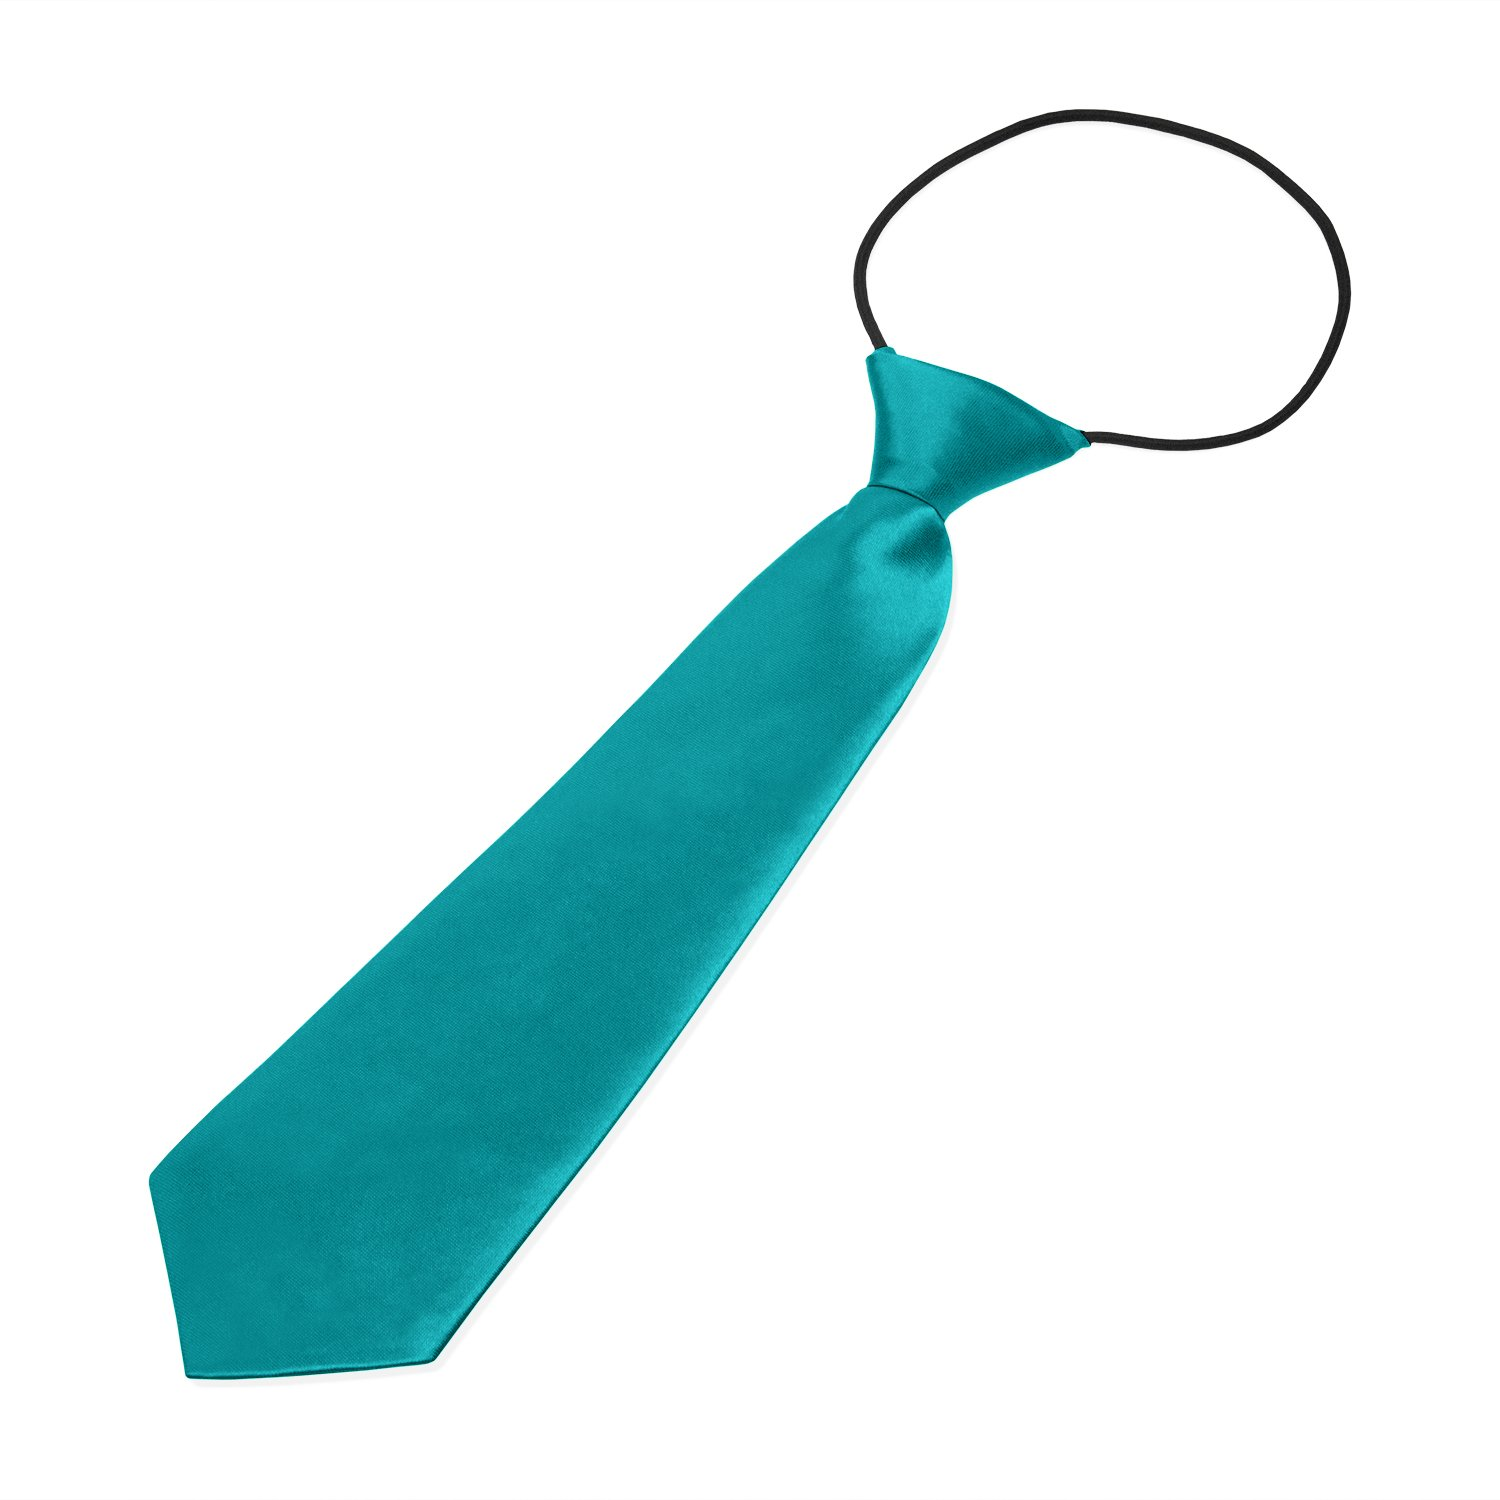 Knight Boys Pre-tied Elasticated Neck Tie Turquoise